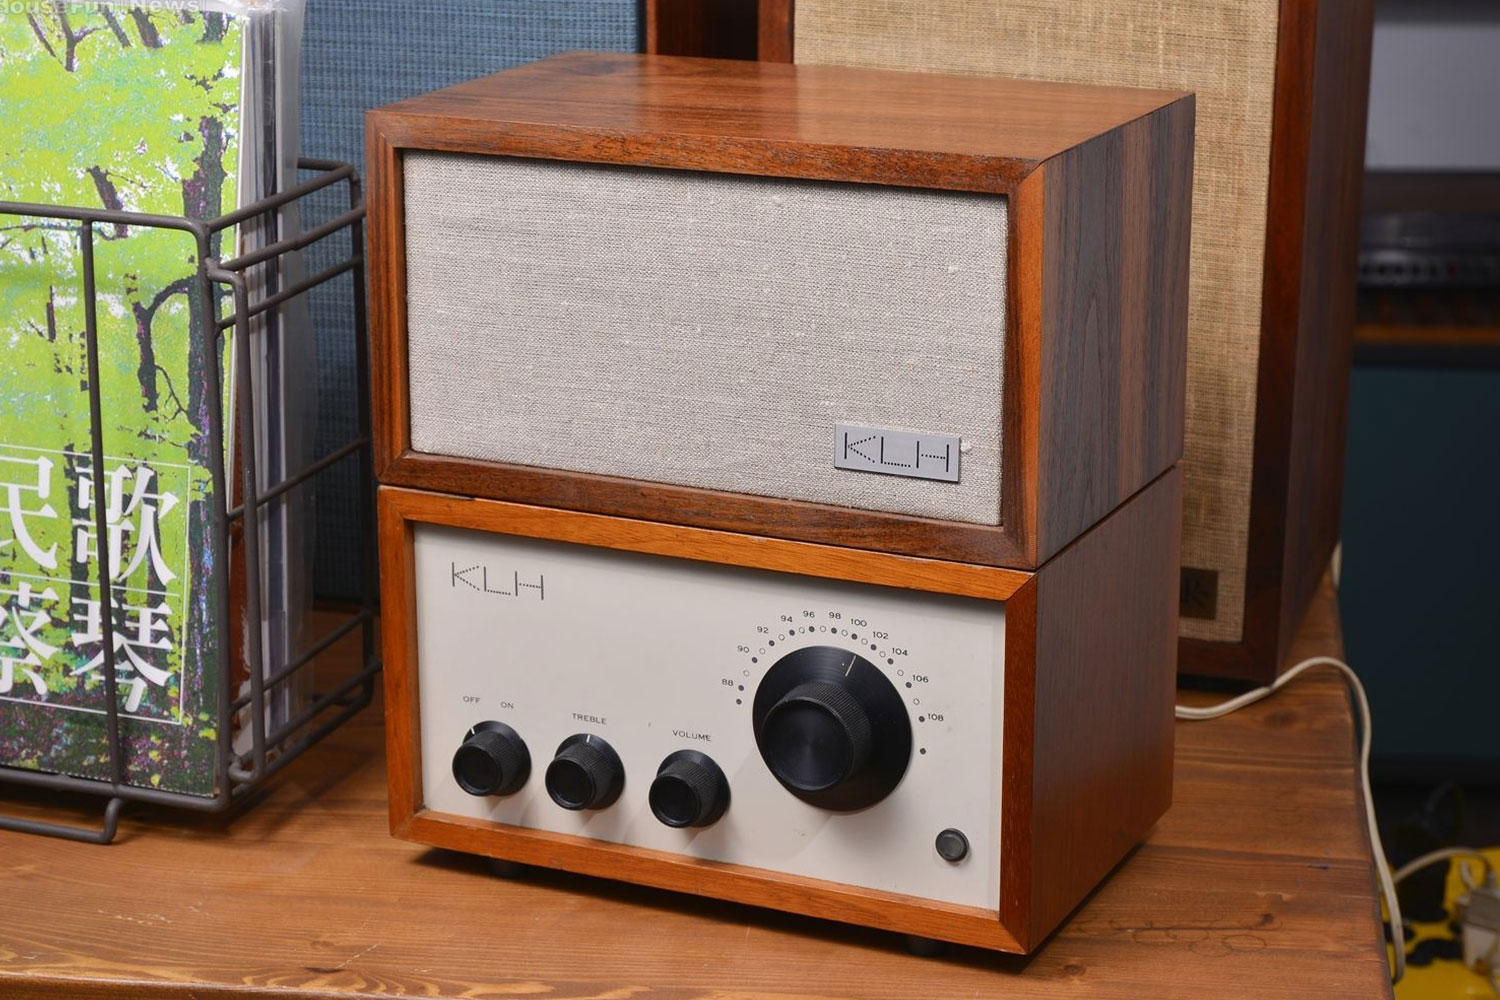 KLH Model Eight Radio